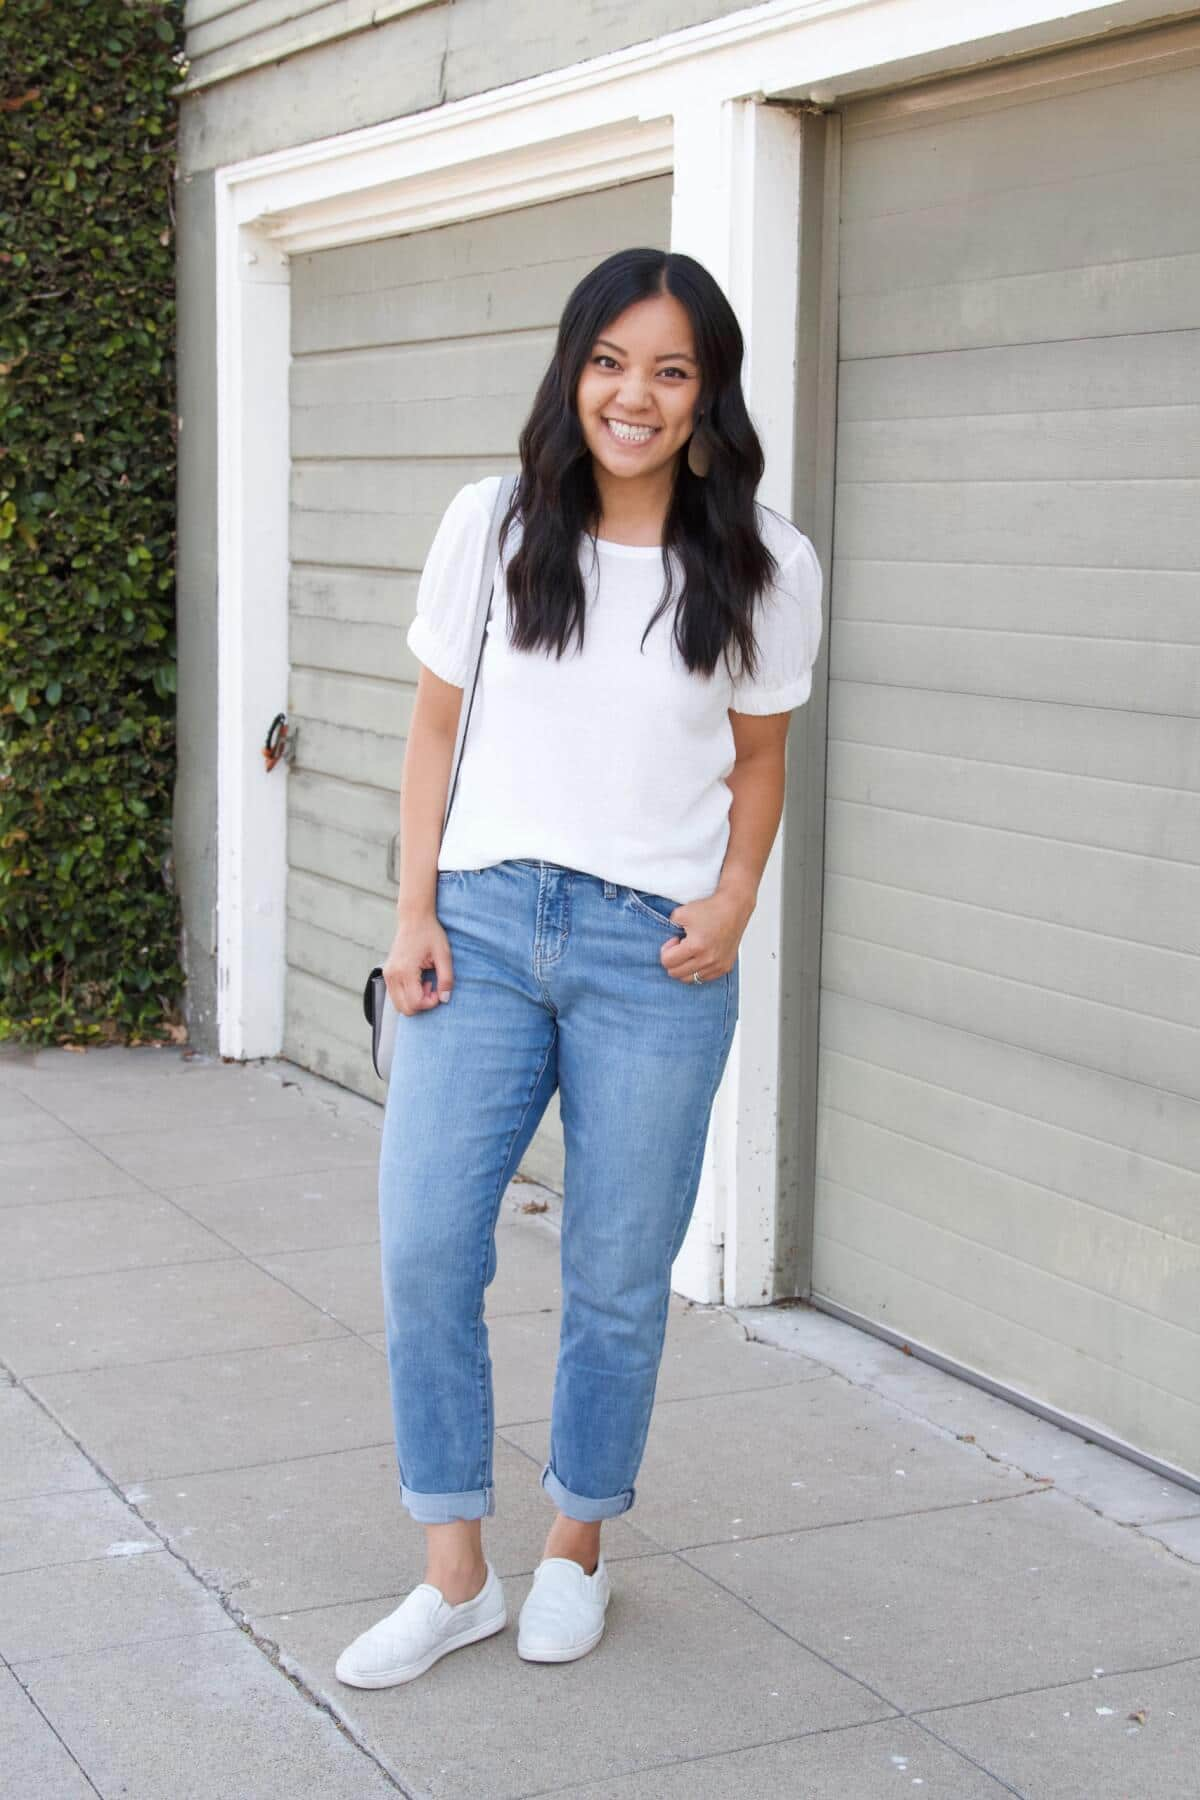 nicer casual outfit Summer to Early Fall Transition: white puff sleeve short sleeve top + light blue straight leg jeans + white slip-on sneakers + white earrings + gray crossbody purse